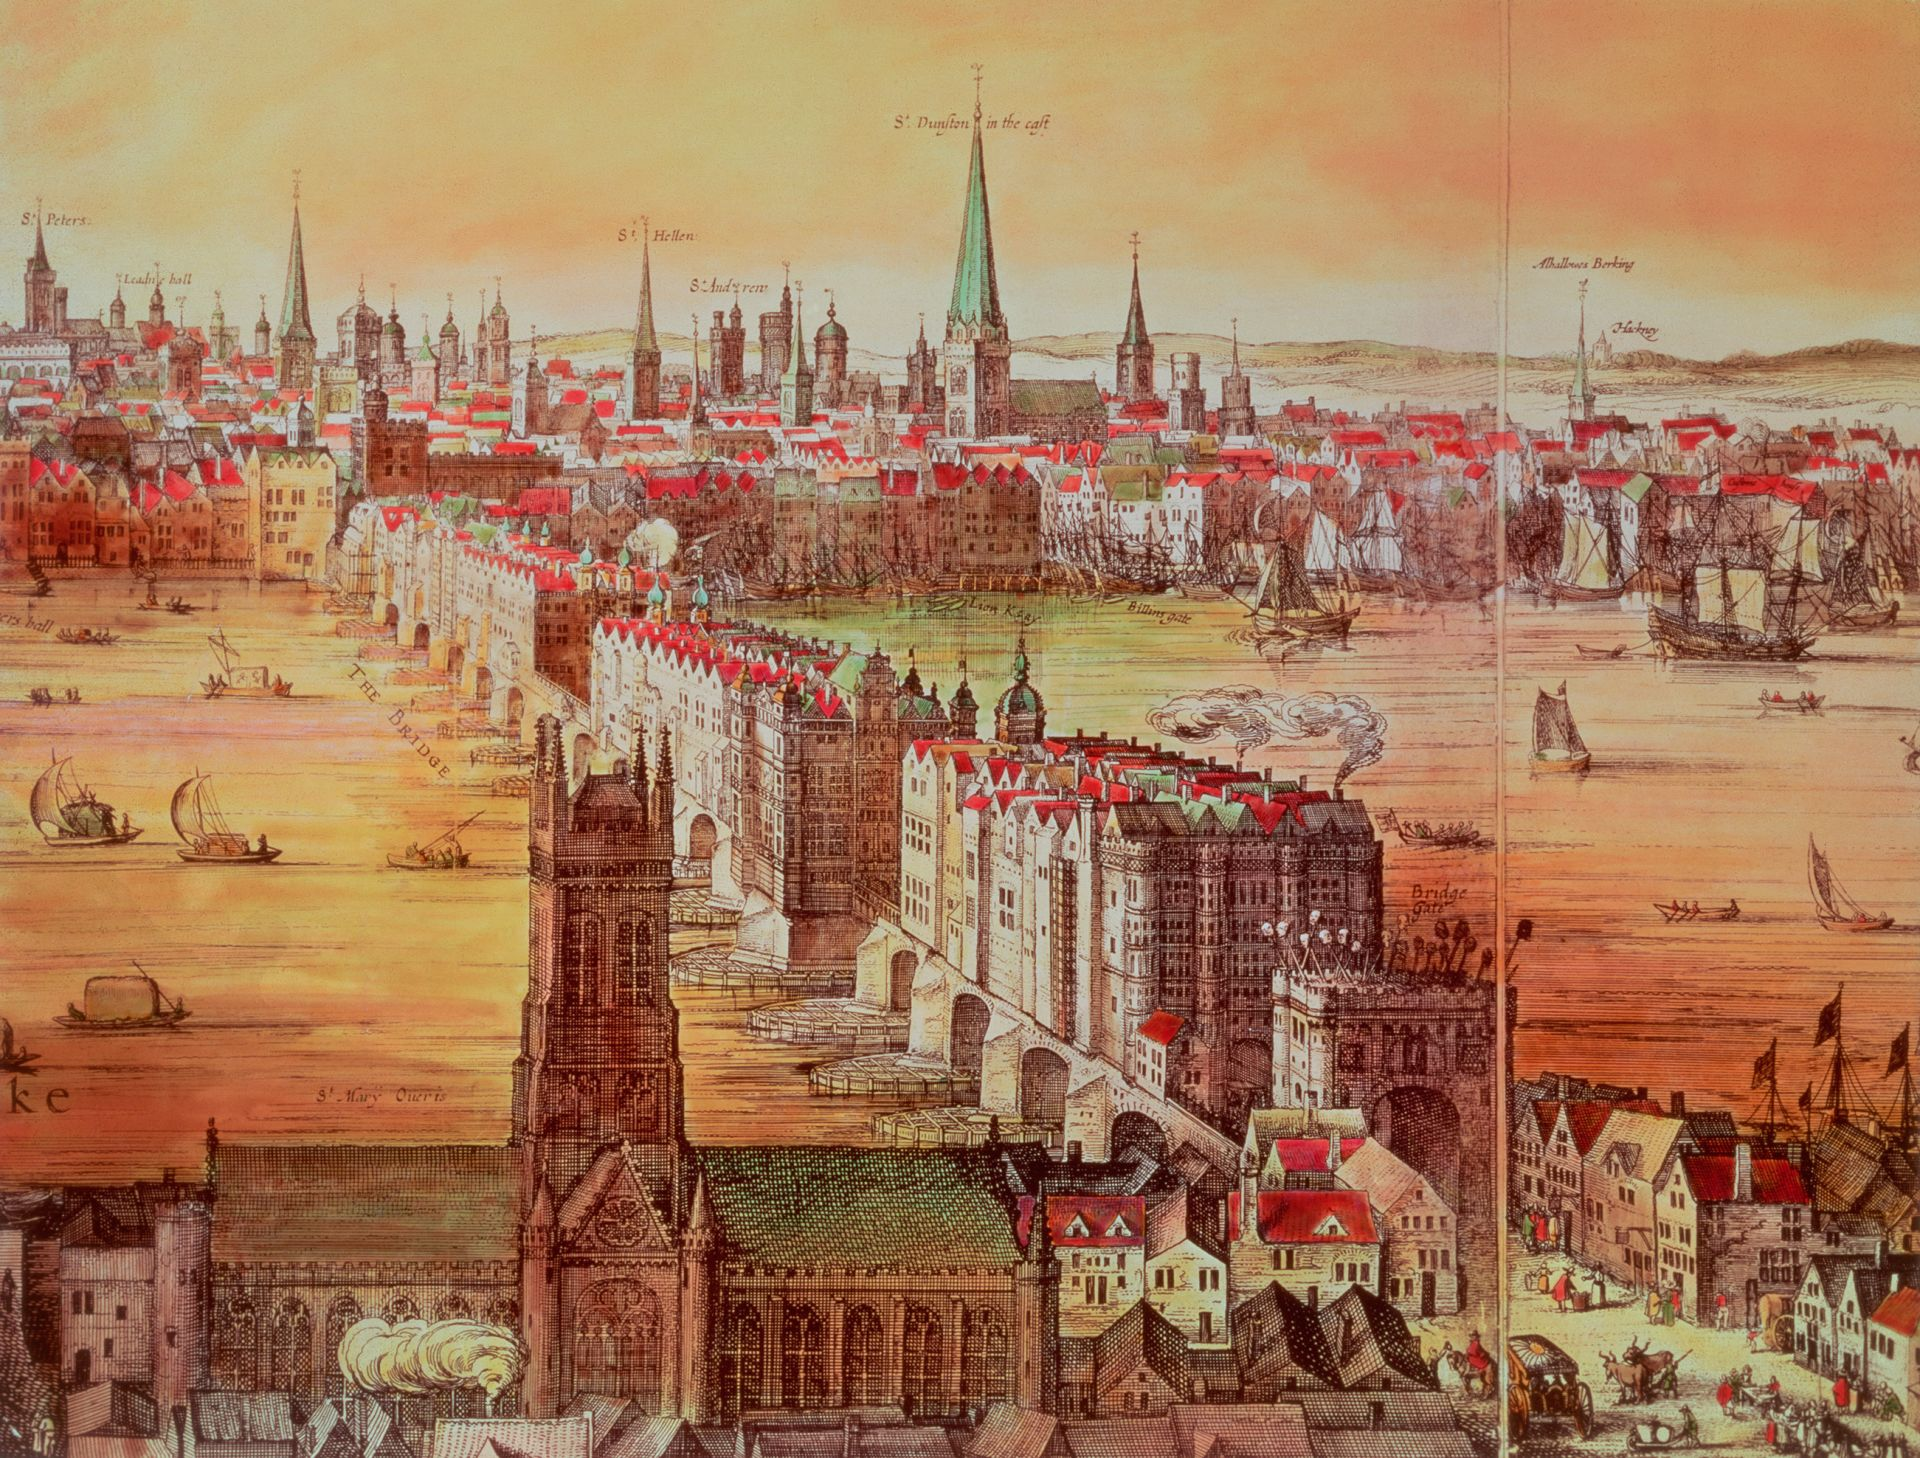 Tudor London Facts | Life In Tudor London | DK Find Out